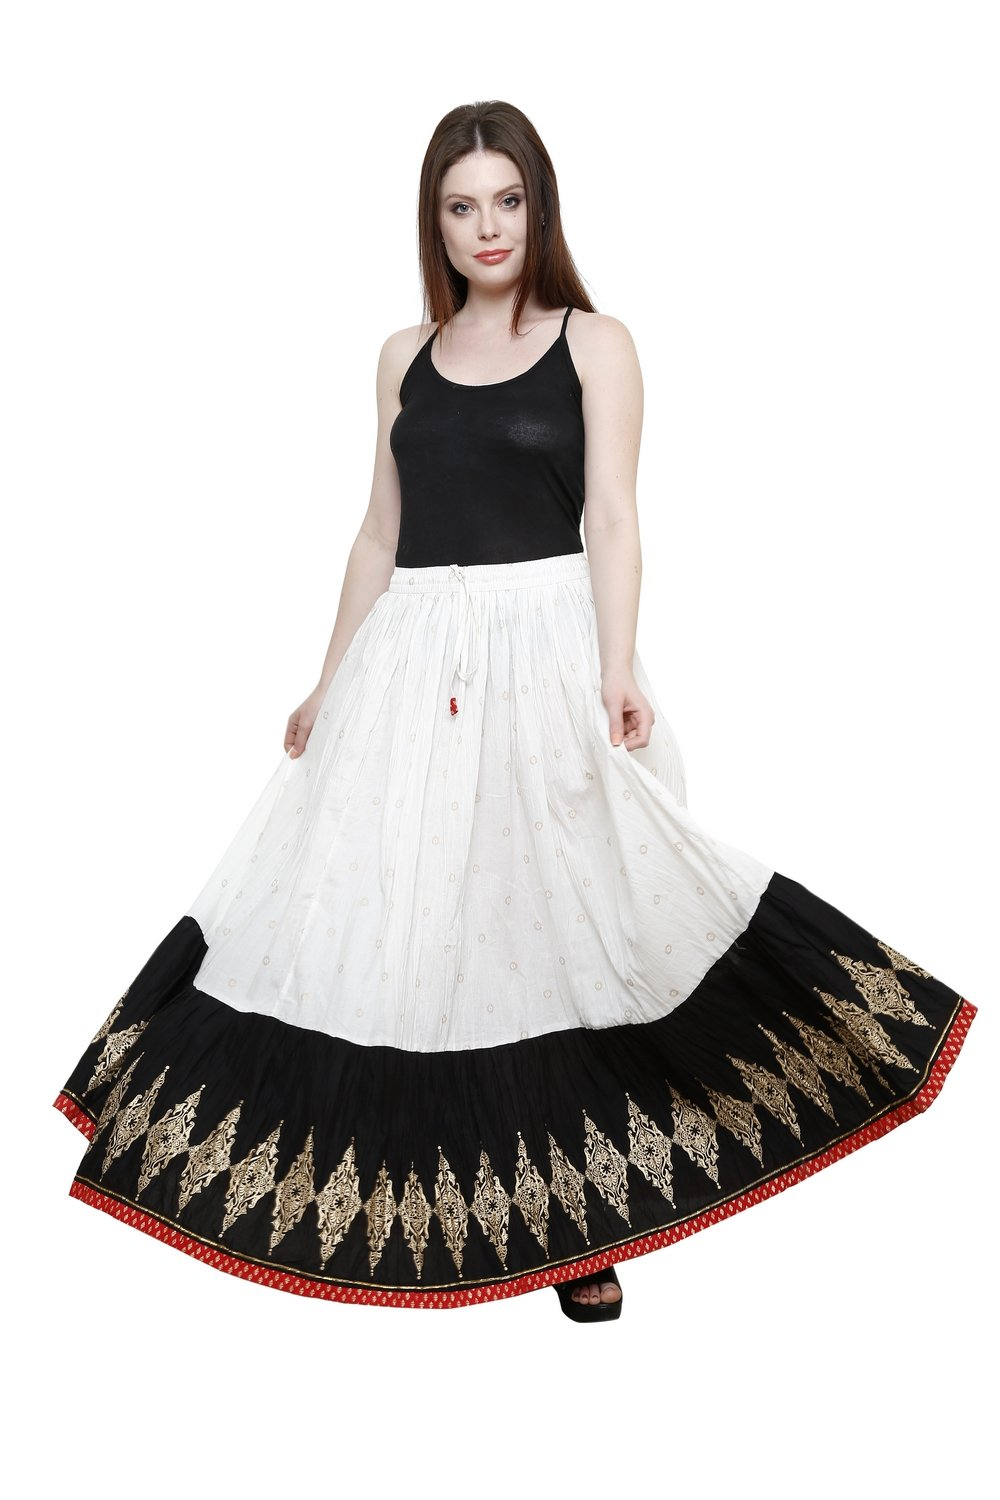 Pistaa Women's Cotton Multi Colour long Designer Flared Casual Hand Block Printed Jaipuri Skirt Bottom